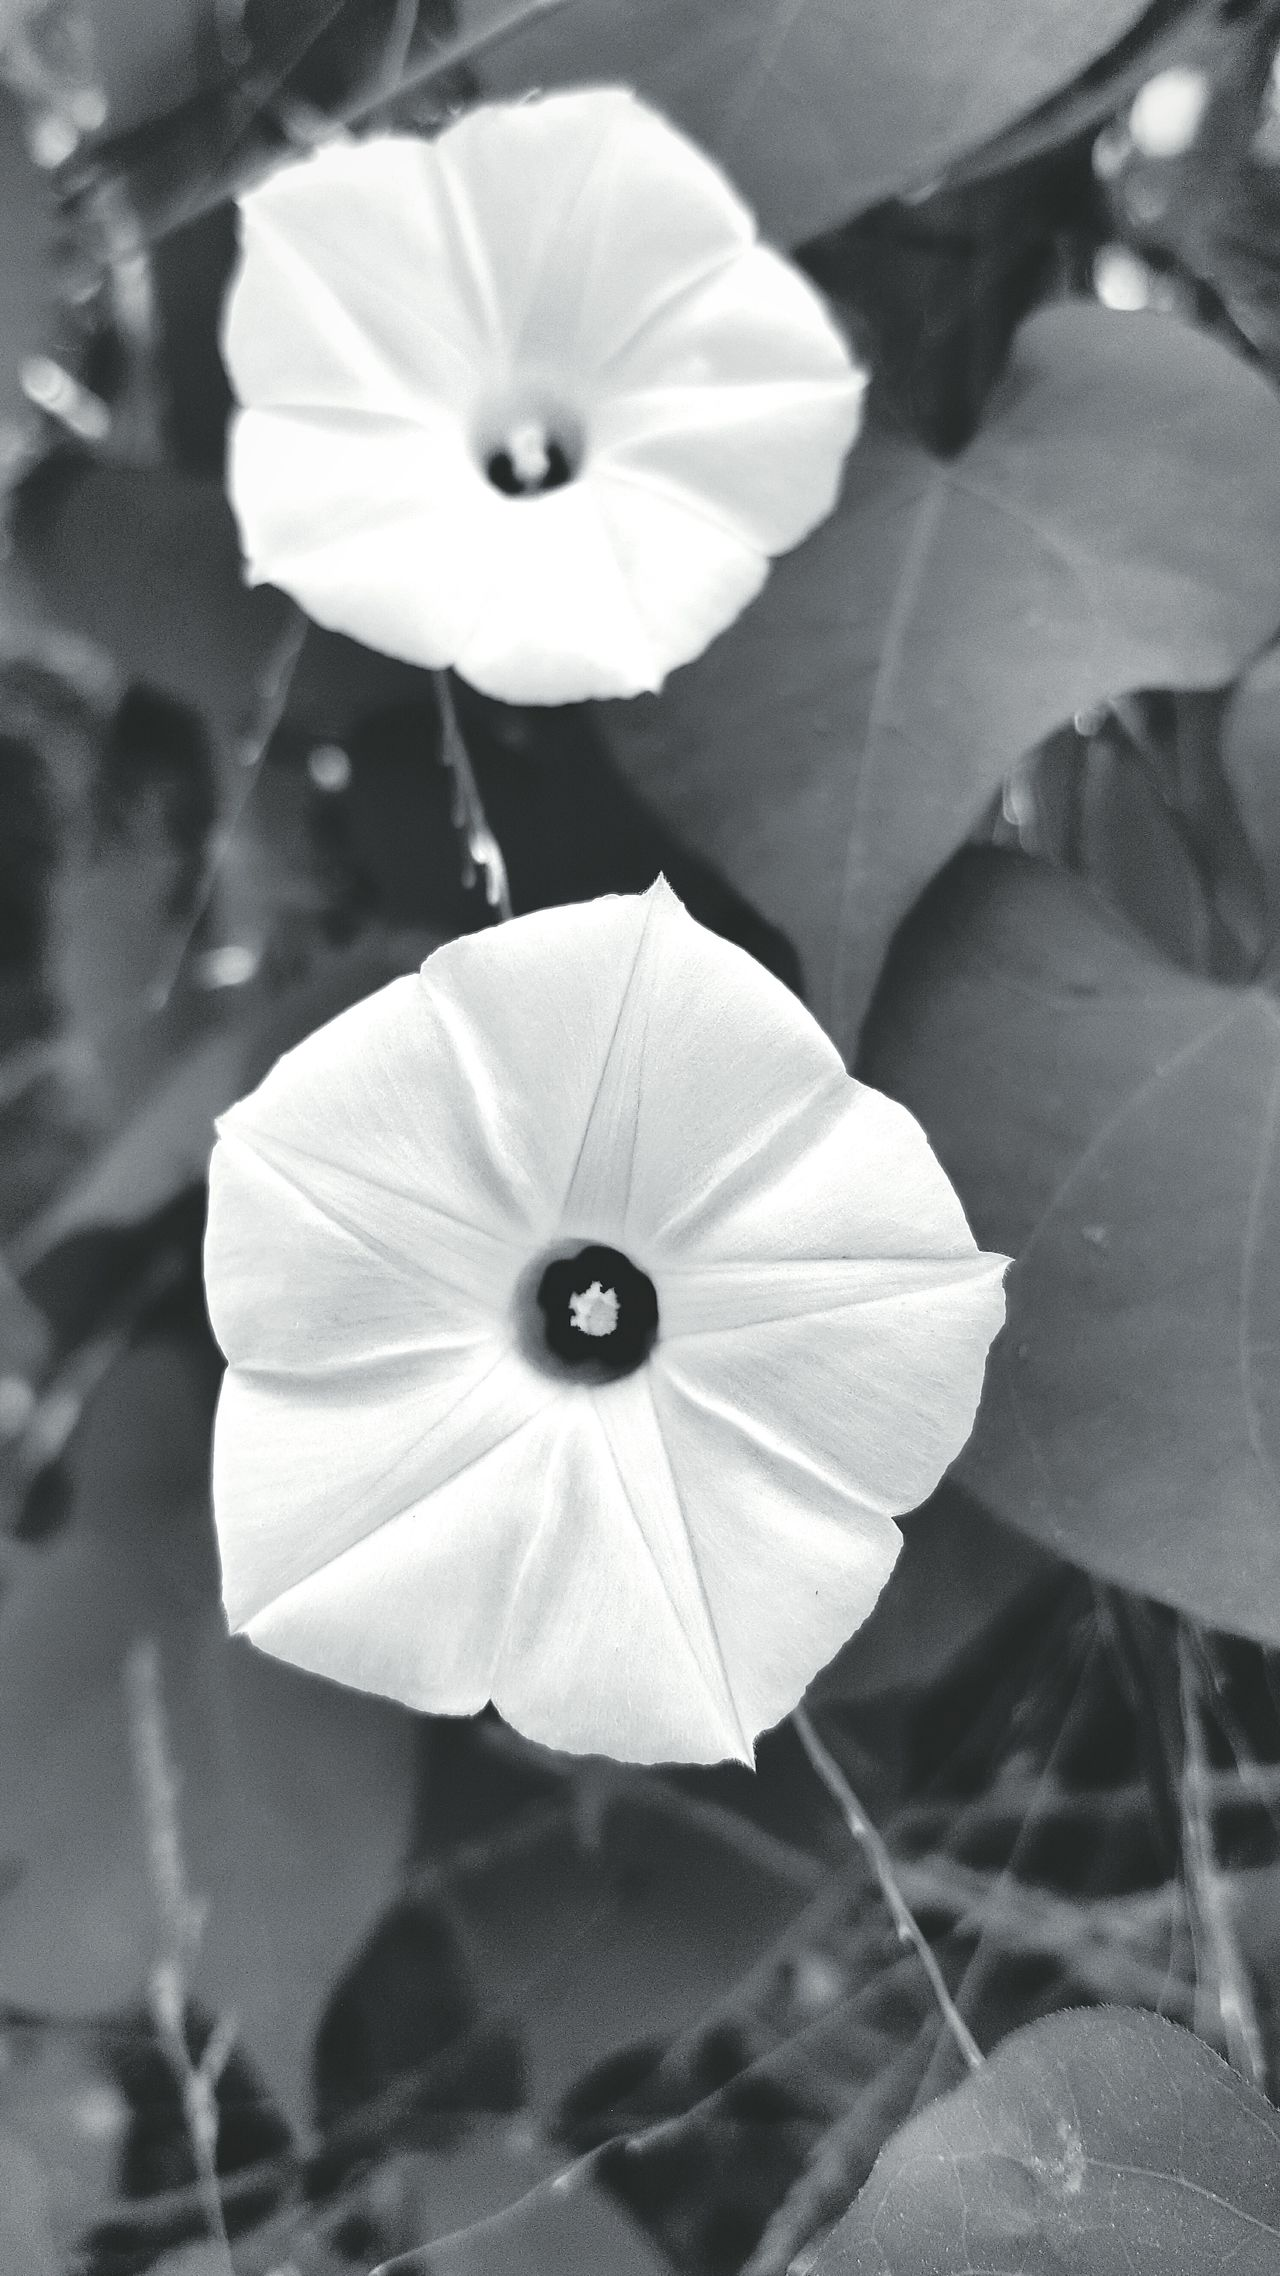 Morning Glory No People Flower Close-up Nature Outdoors Freshness Monochrome Photography Black And White Photography Fresh On Eyeem  Showcase February Personal Perspective Hello World EyeEm Of The Week My Point Of View The Week Of Eyeem Check This Out Nature_collection Nature Of Eyeem EyeEm Natute Lover Beauty In Nature Monochrome Morning Glory White Morning Glory